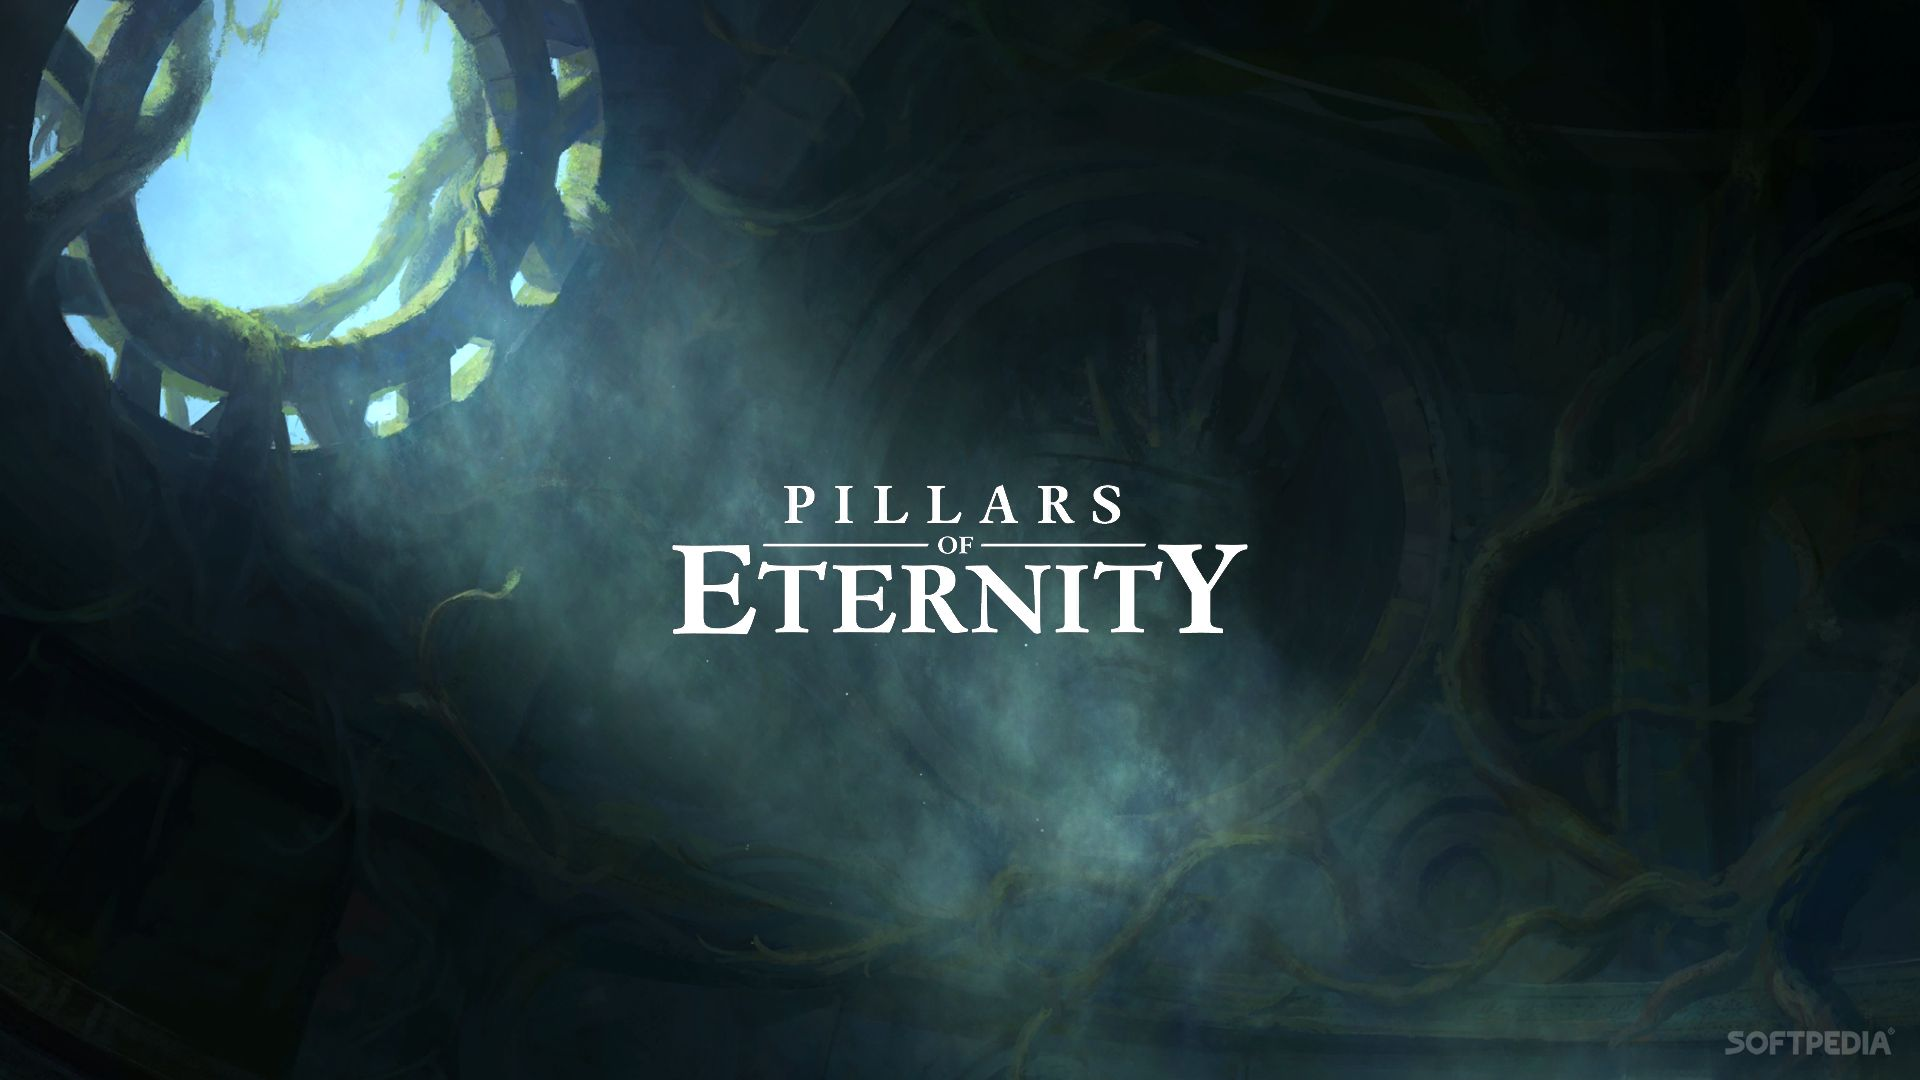 Gear Wallpaper Hd Pillars Of Eternity Wallpapers Pictures Images